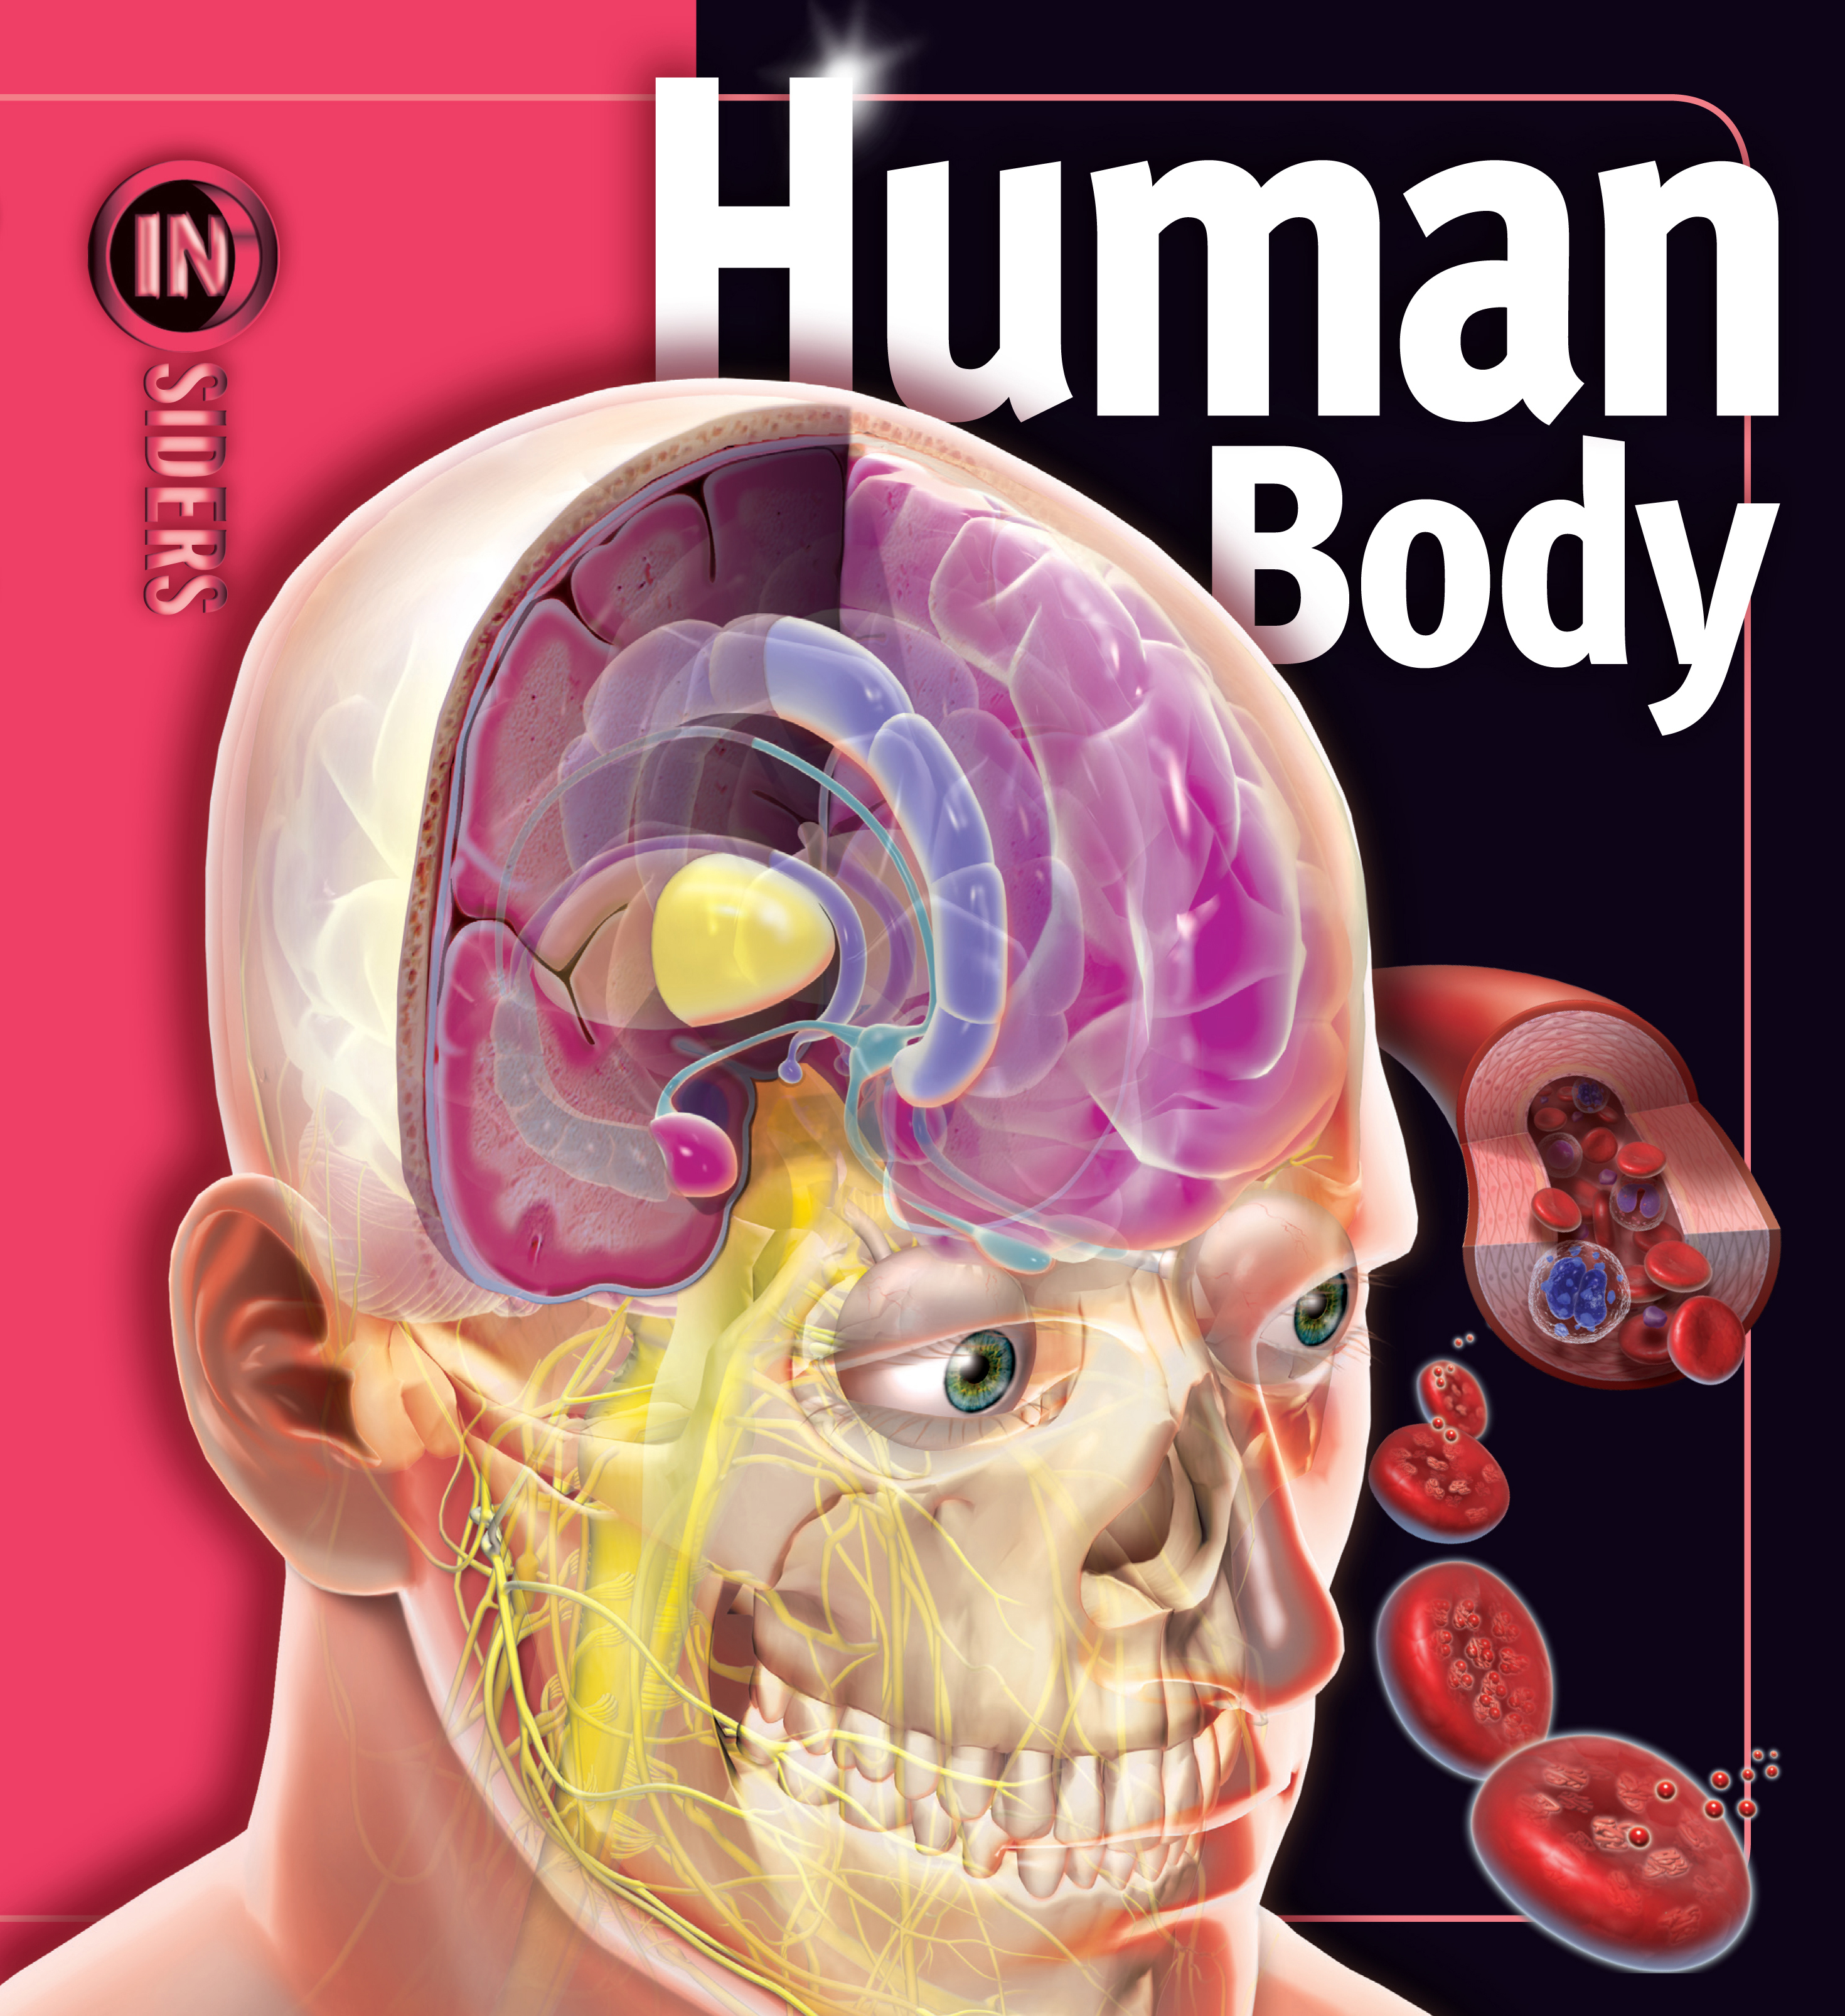 Human Body Book By Linda Calabresi Official Publisher Page